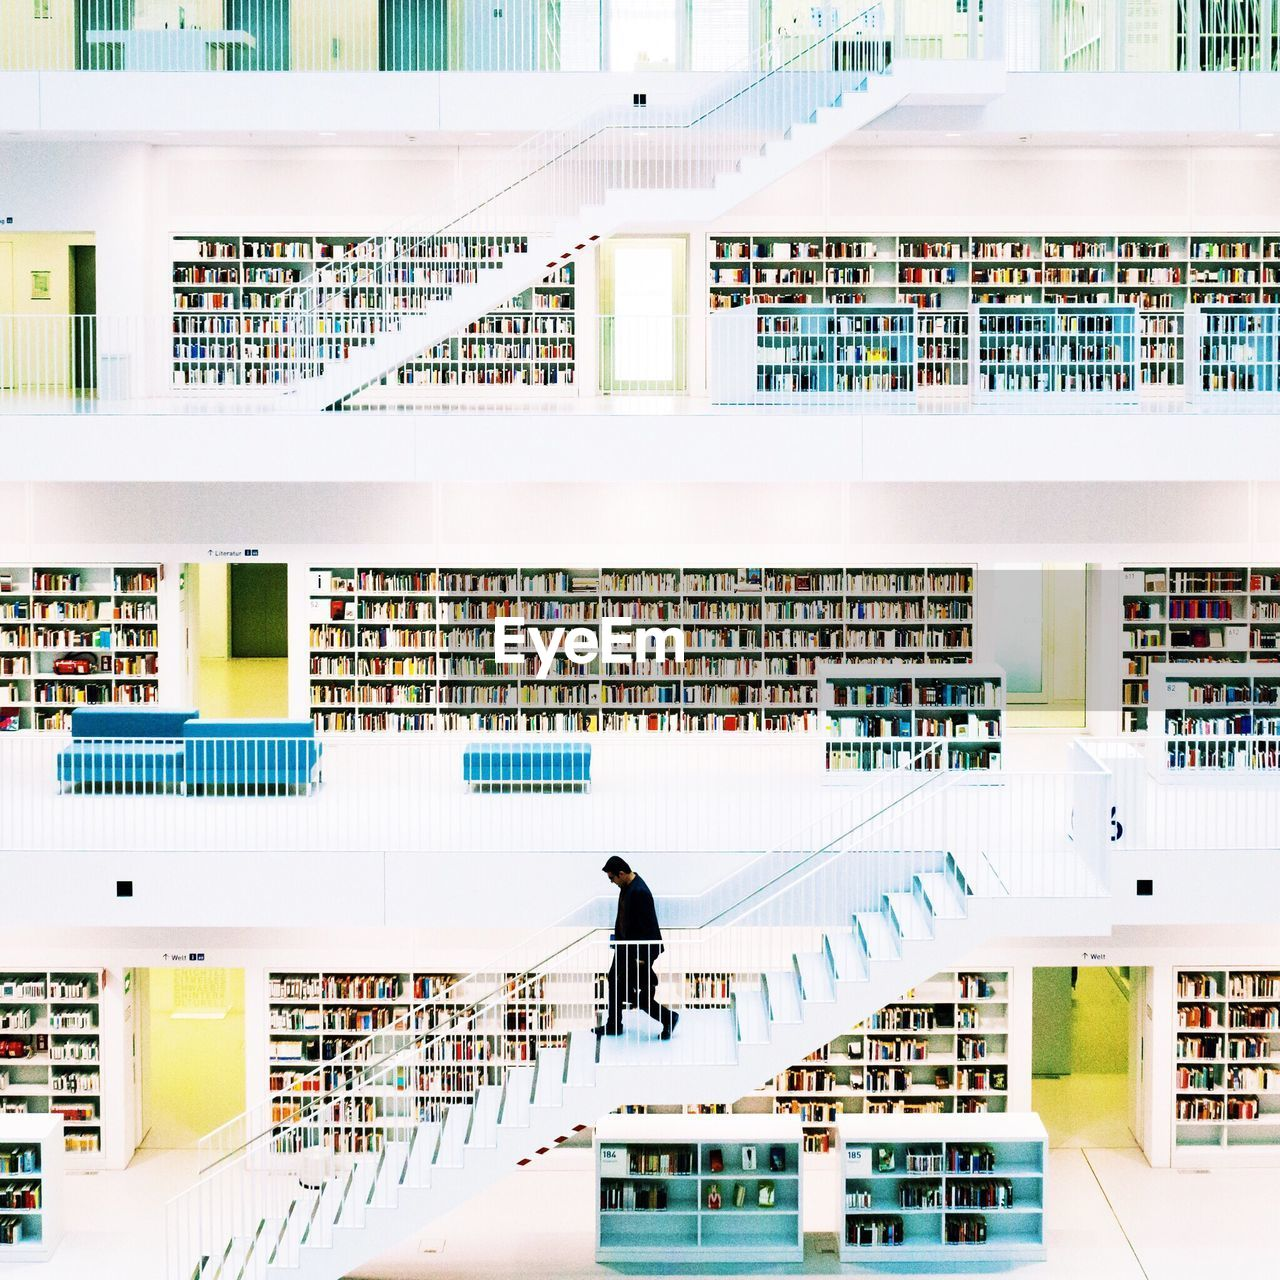 architecture, real people, railing, library, book, built structure, bookshelf, shelf, one person, men, indoors, day, people